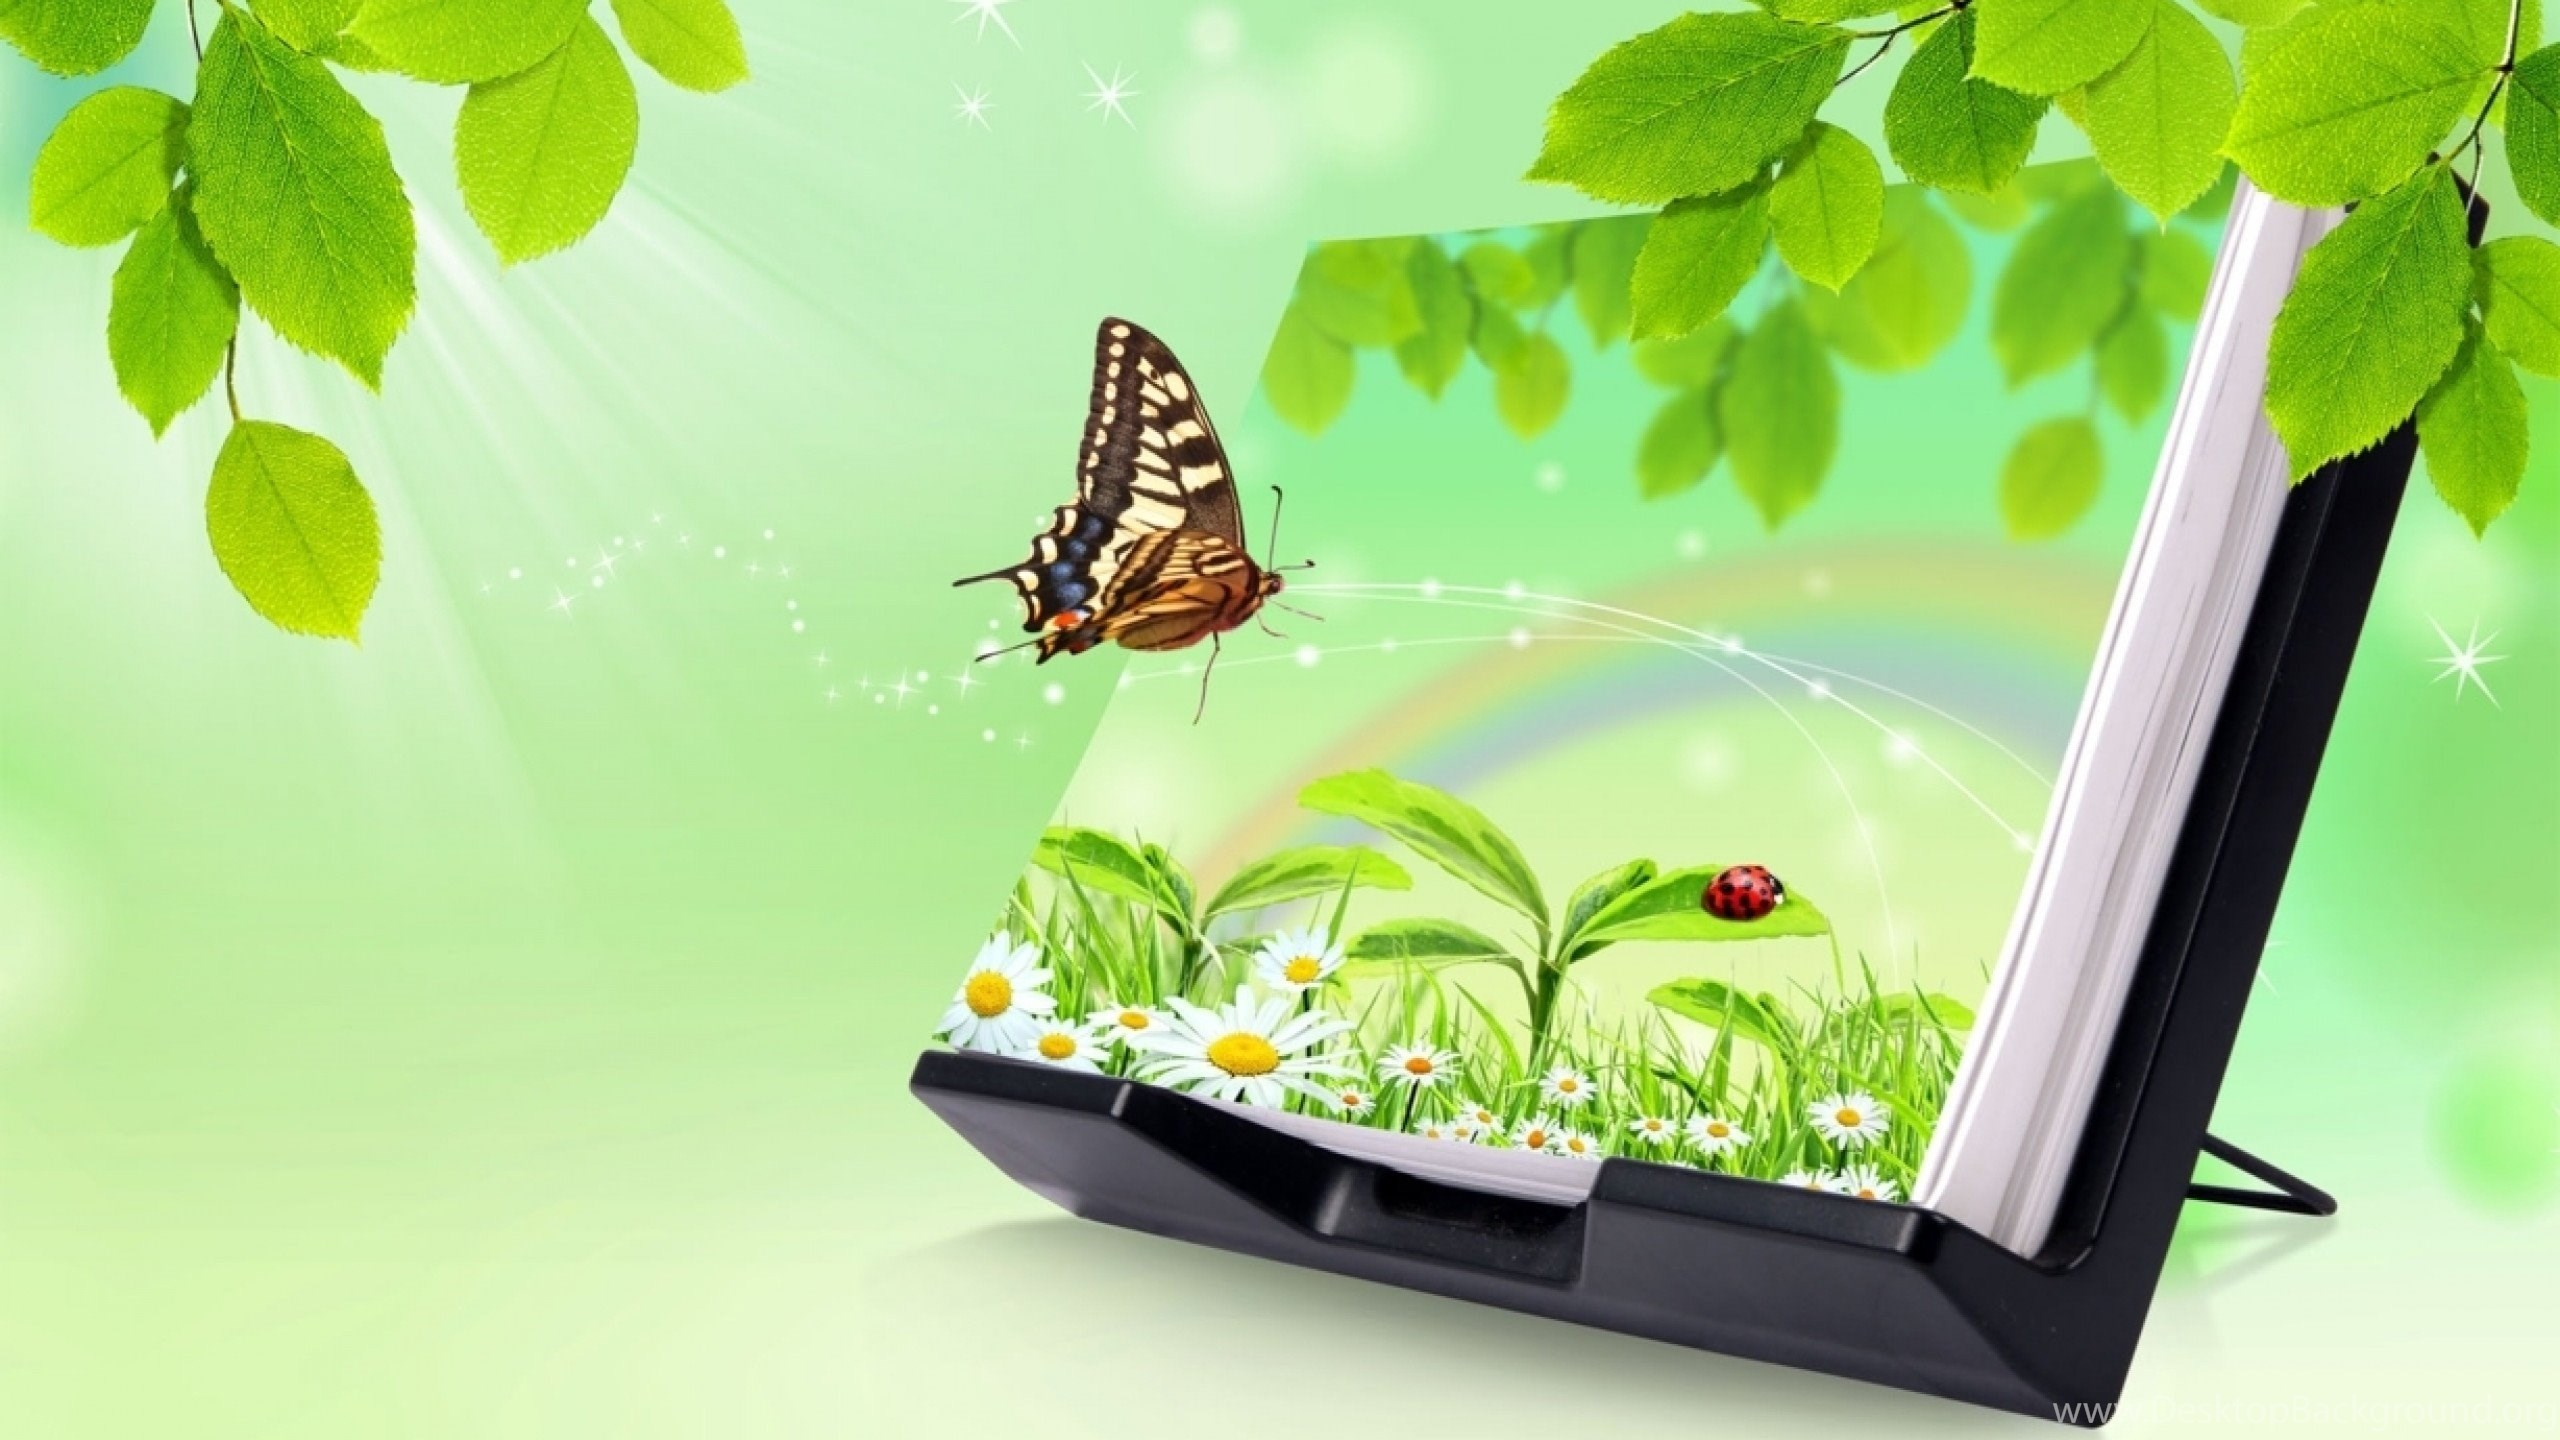 Butterfly Nature 3d Hd Wallpapers Jpg 289020 Desktop Background